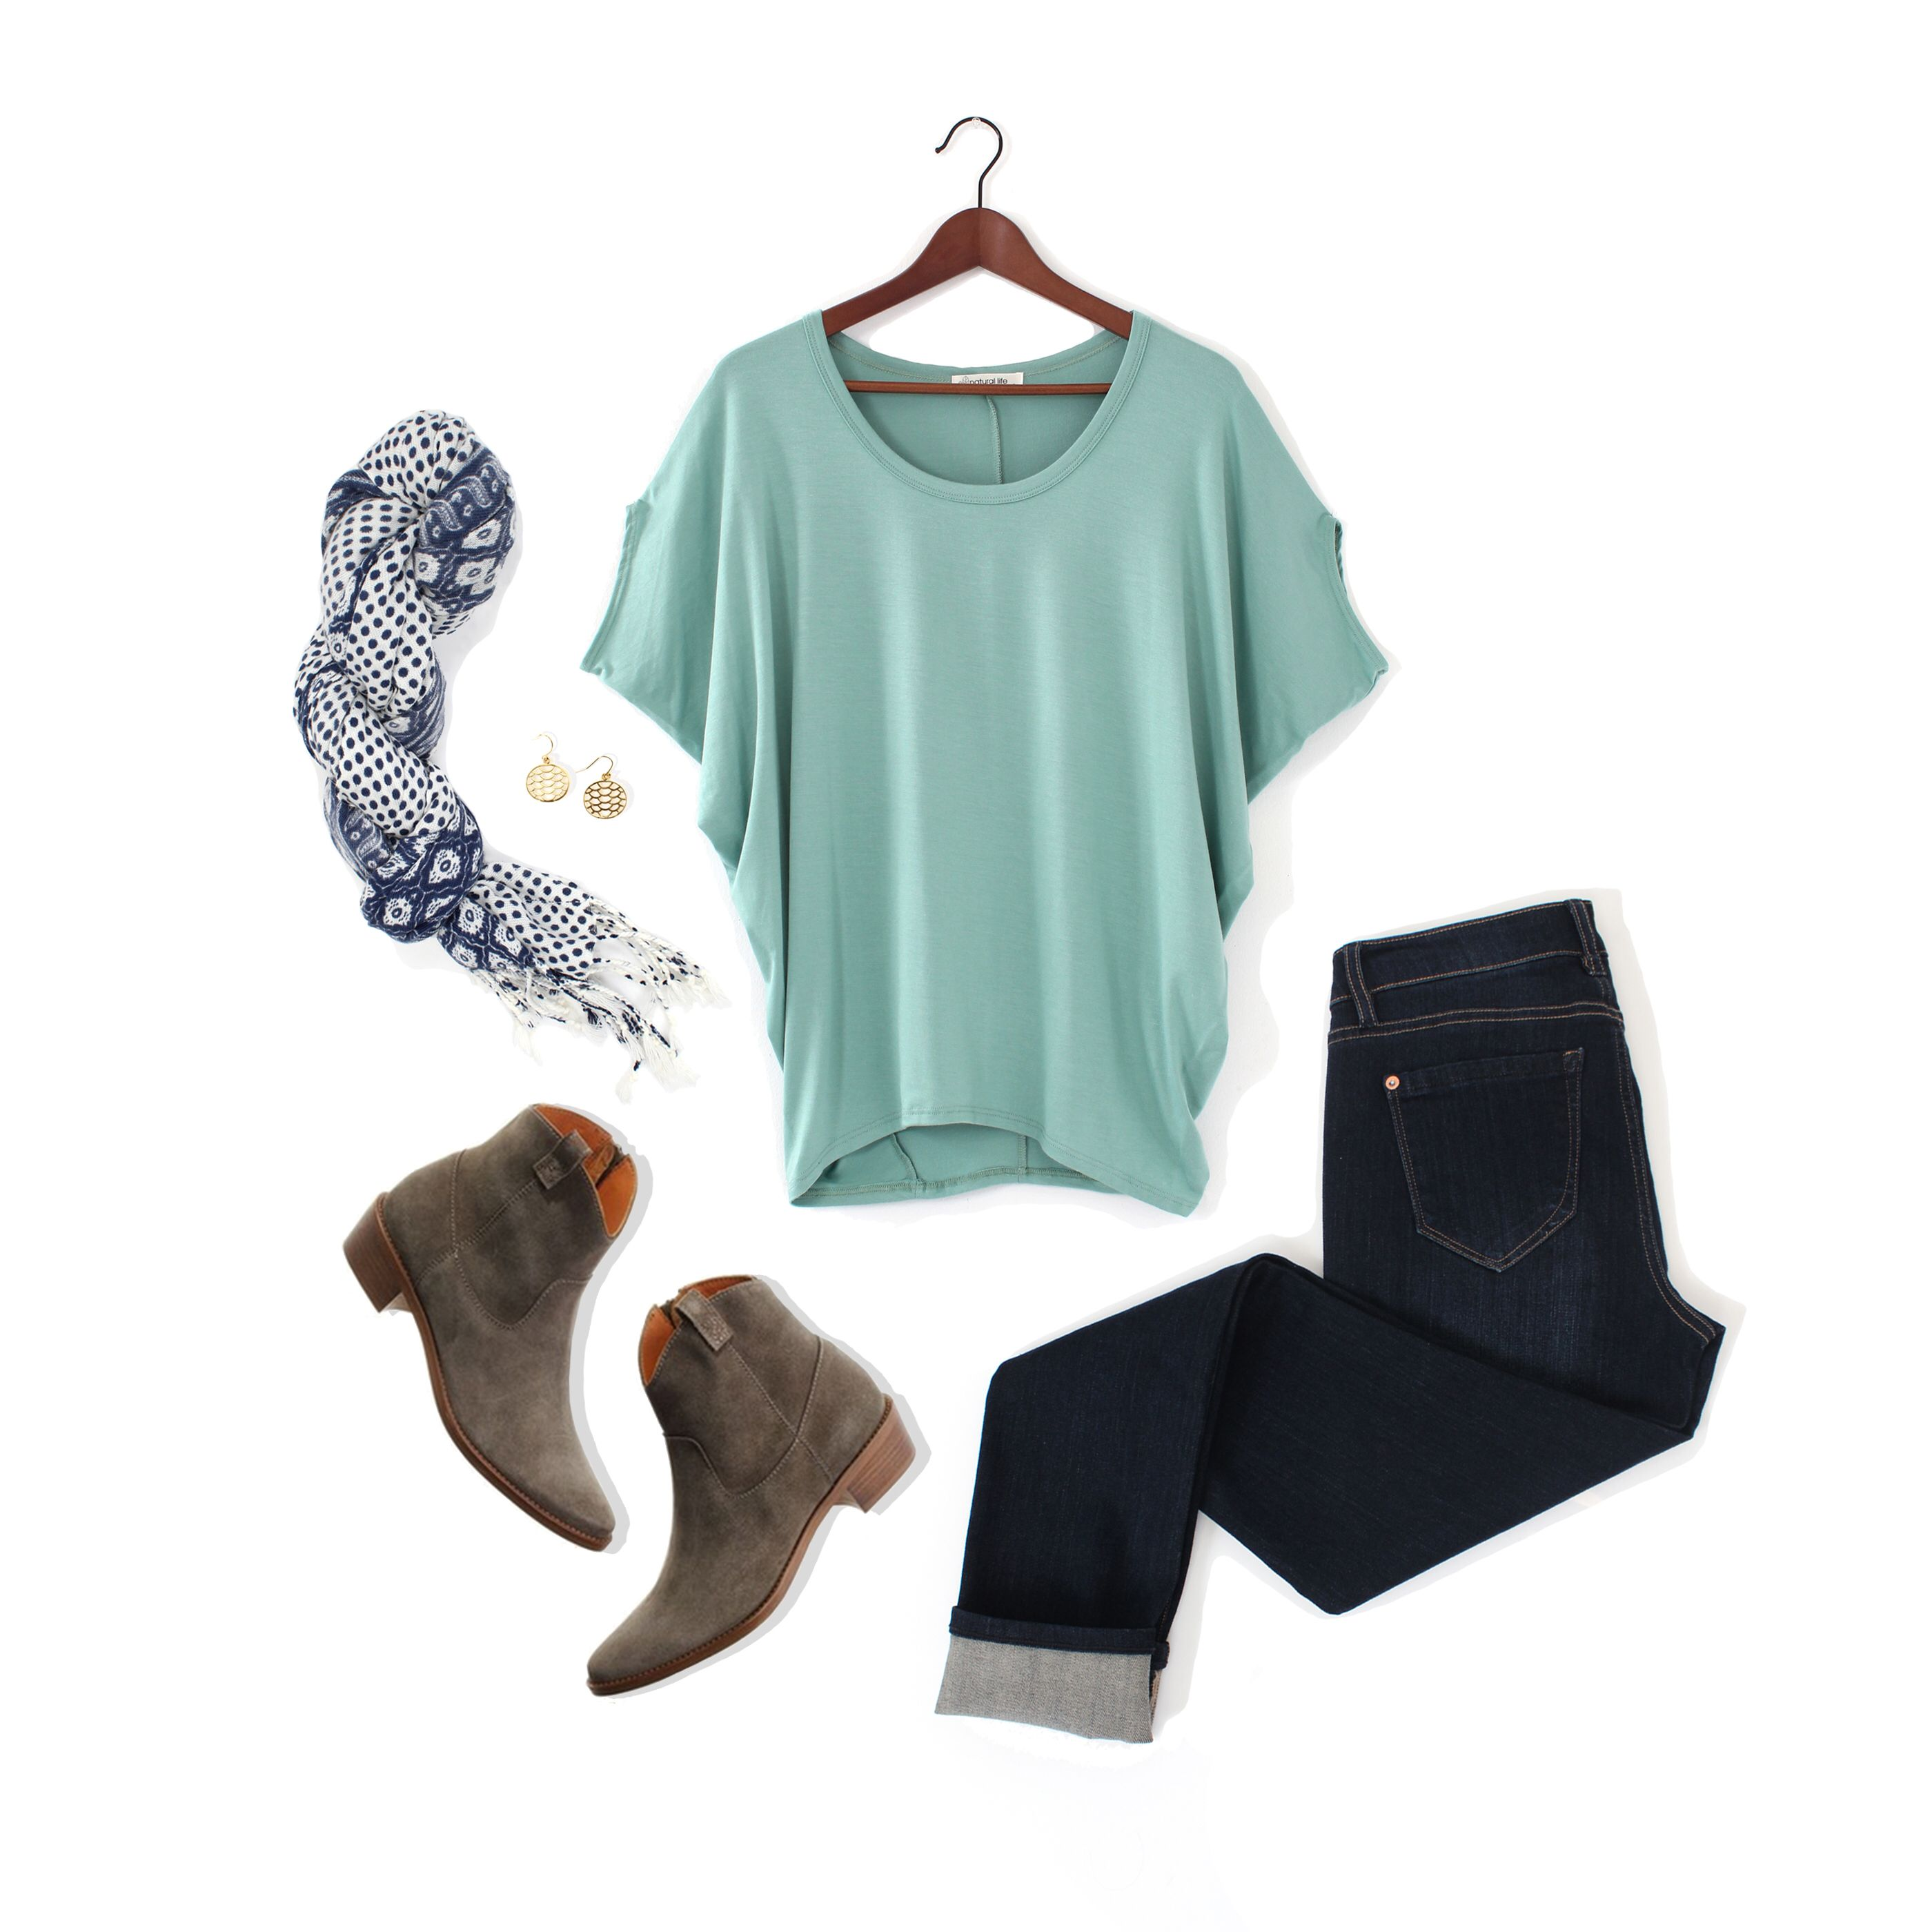 Casual Chic outfit from Stitch Fix